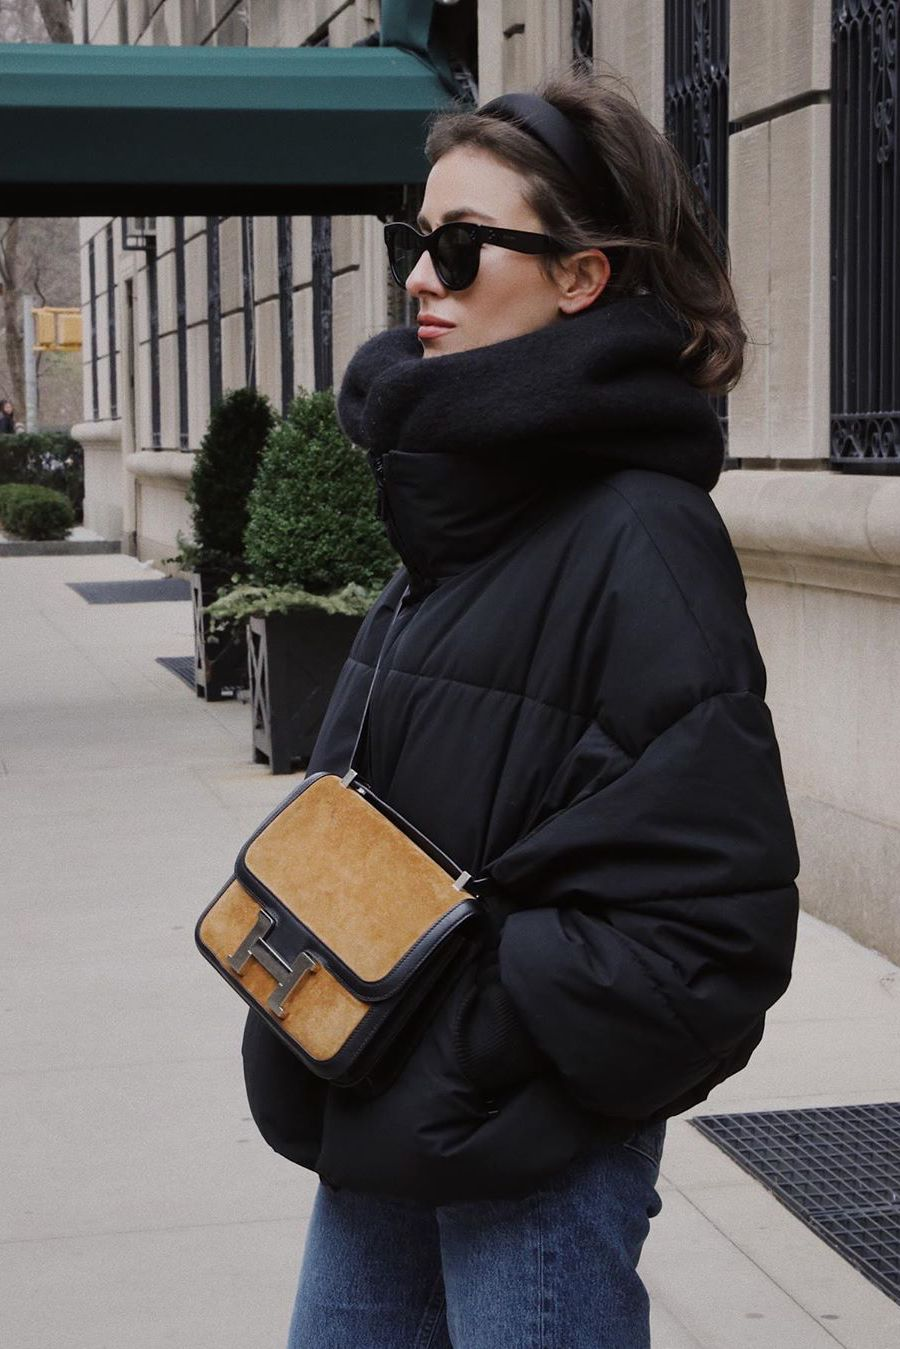 How to stay truly warm AND look chic all through winter